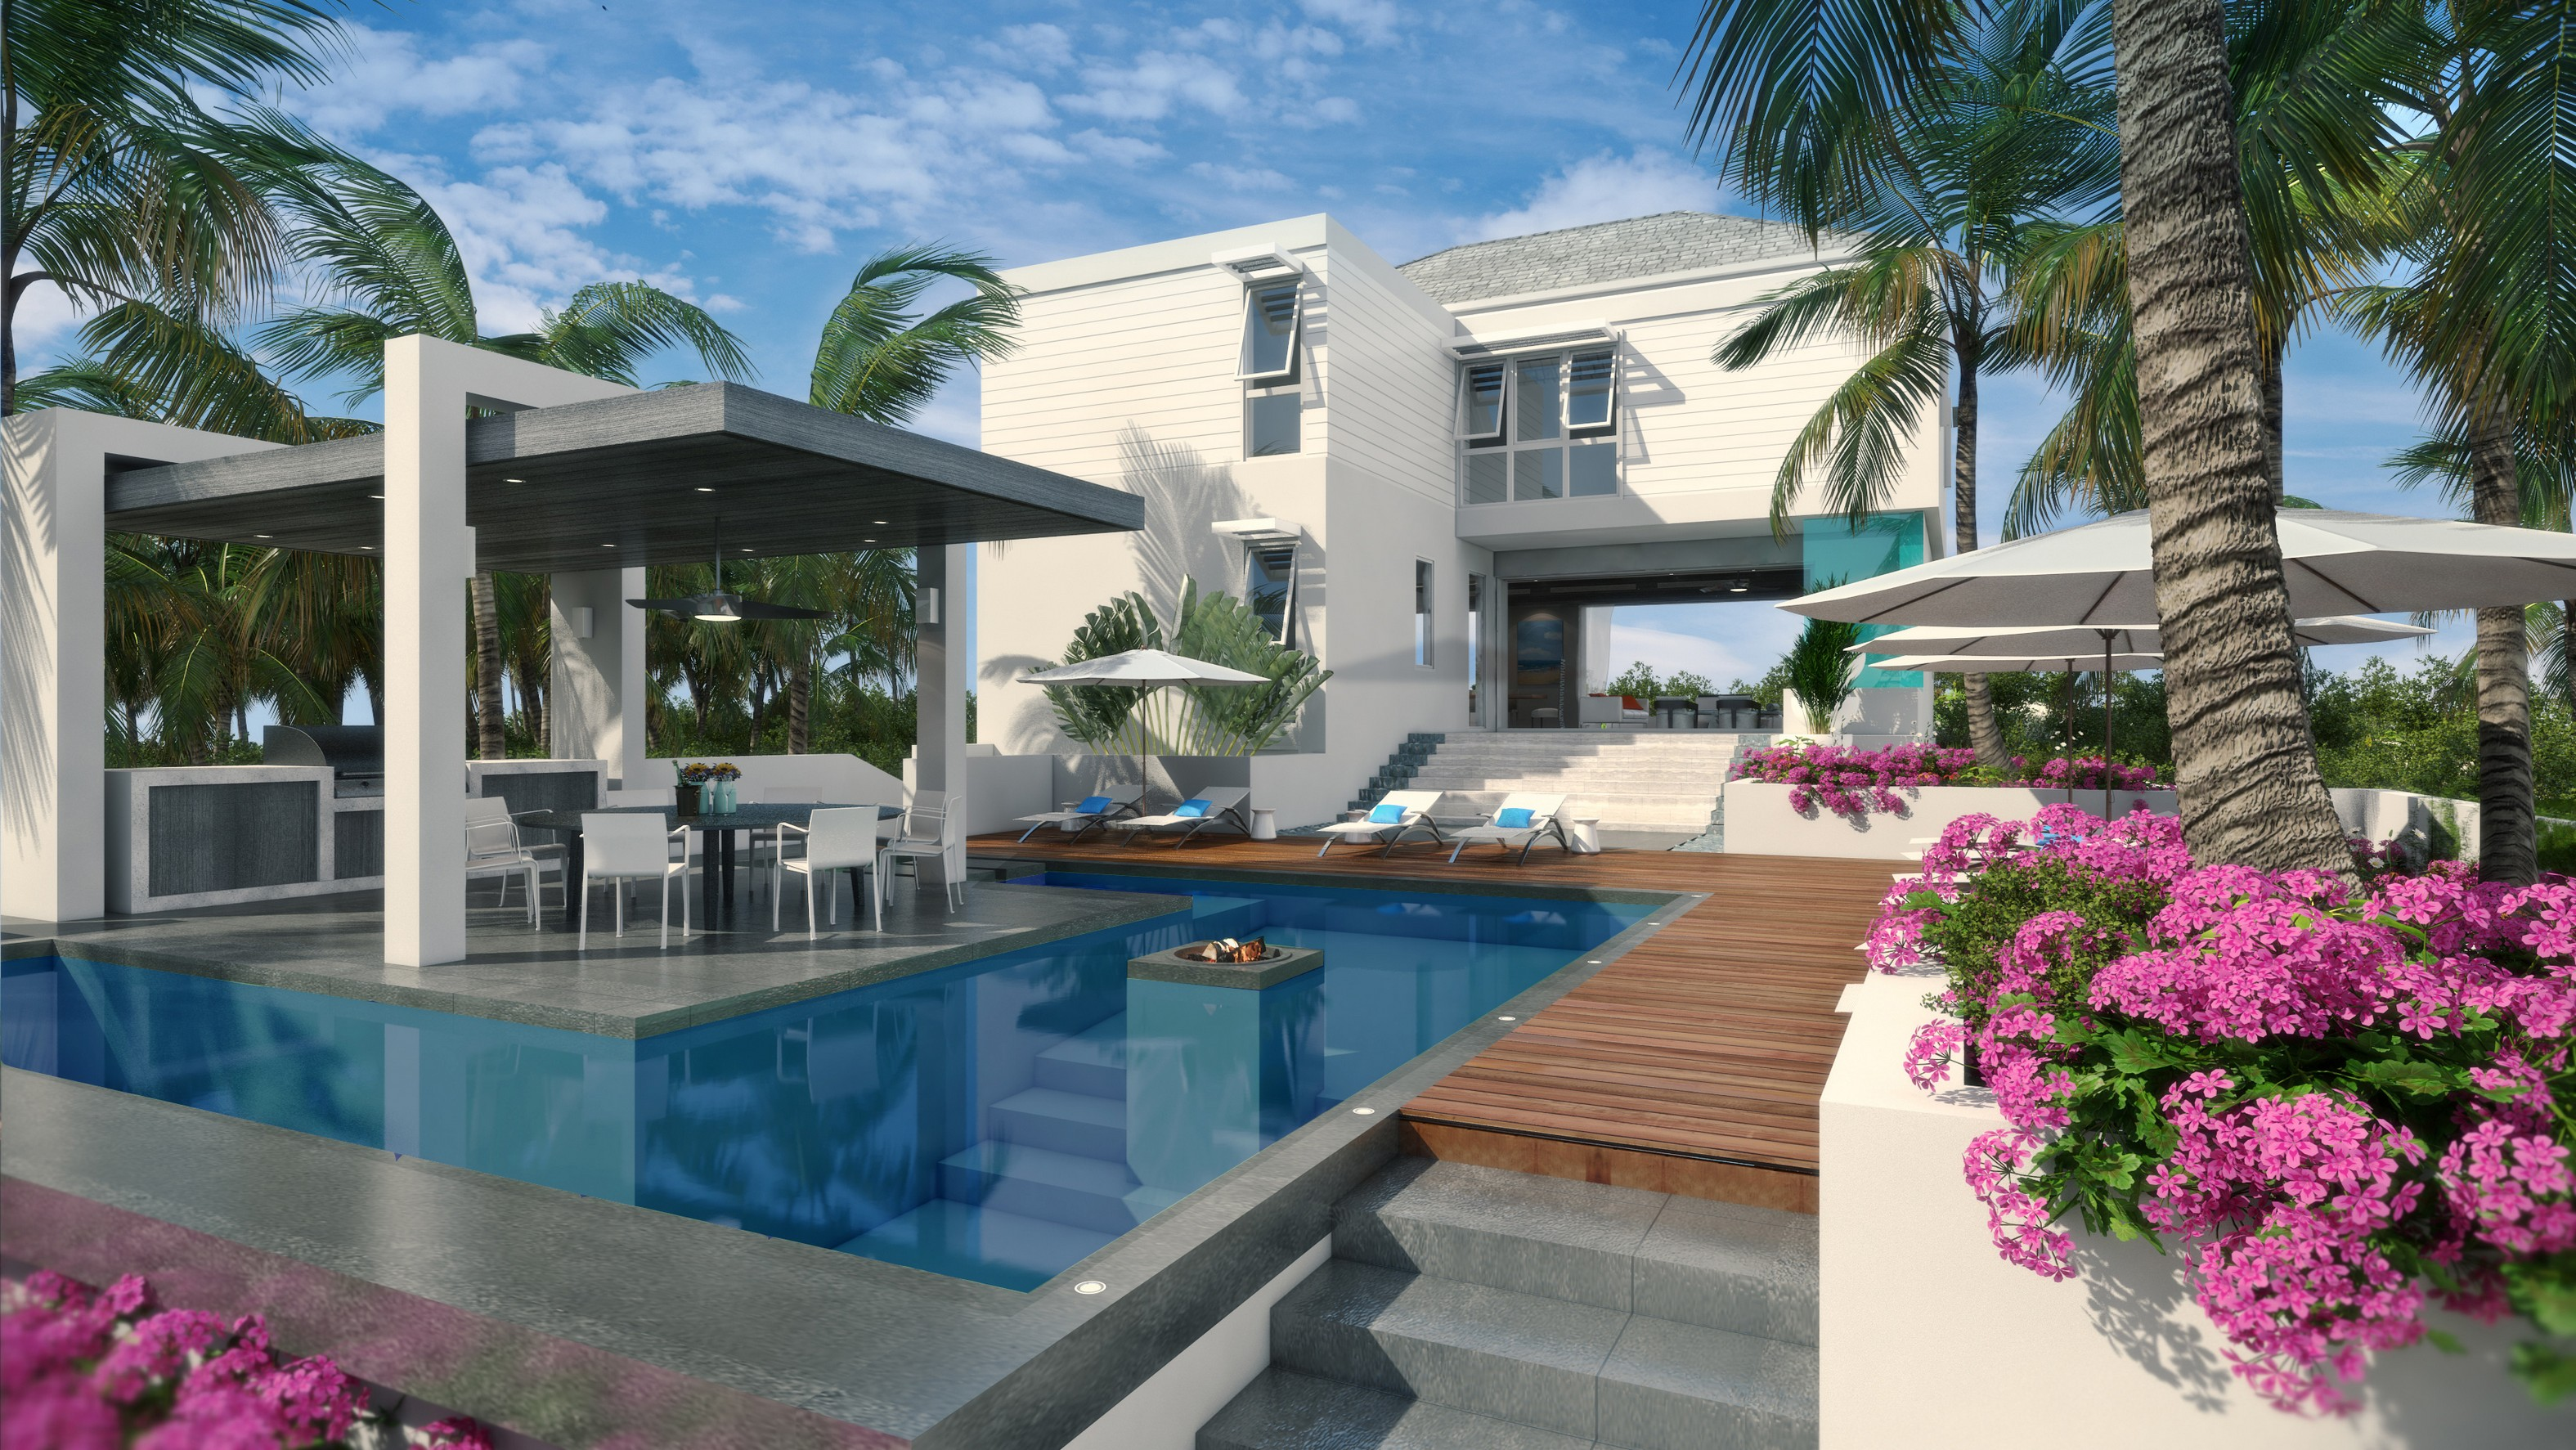 Single Family Home for Sale at The Dunes ~ Managed by Grace Bay Resorts North Shore Beachfront Turtle Cove, Providenciales TC Turks And Caicos Islands